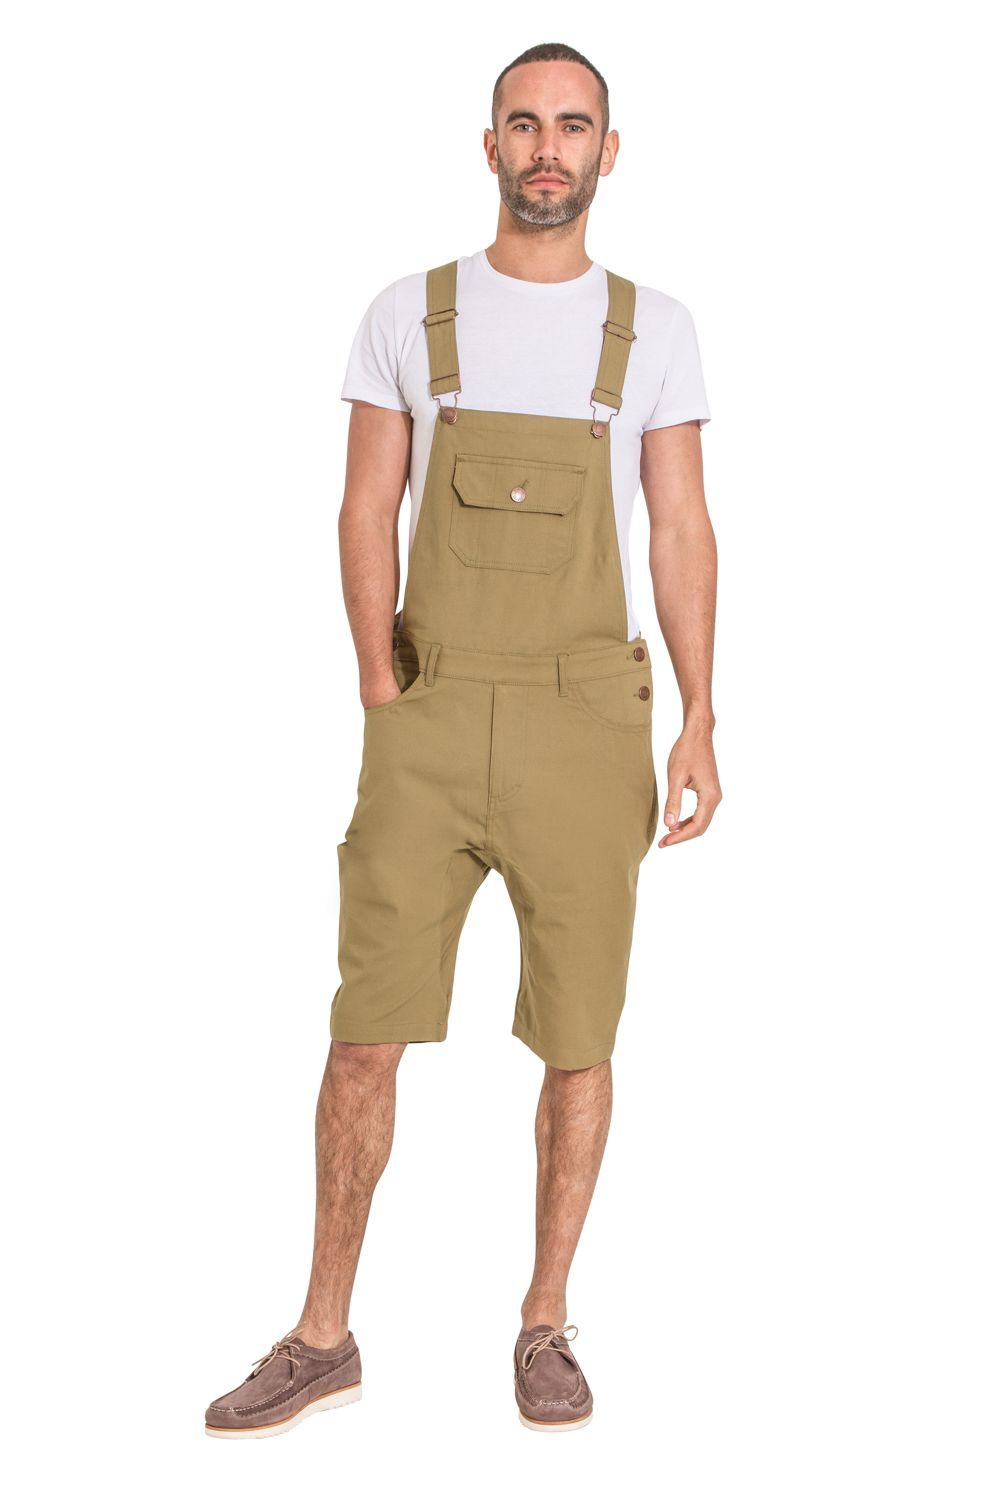 Full frontal pose looking straight ahead, wearing slim-fit, olive cotton bib-overall shorts, styled with white t-shirt and brown suede shoes.